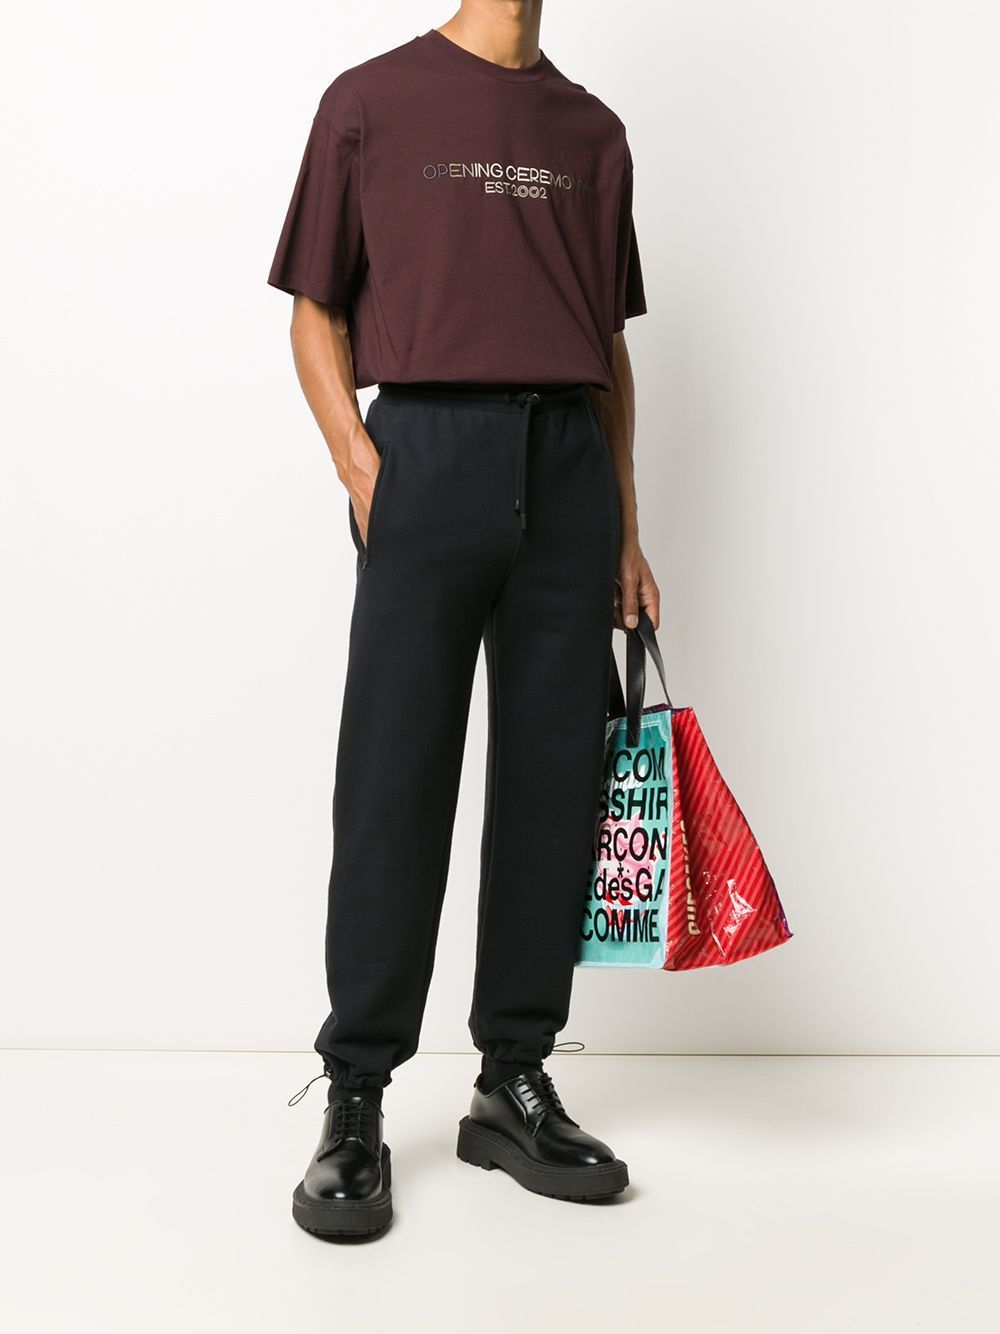 Opening Ceremony Box Logo Print Sweatpants Black